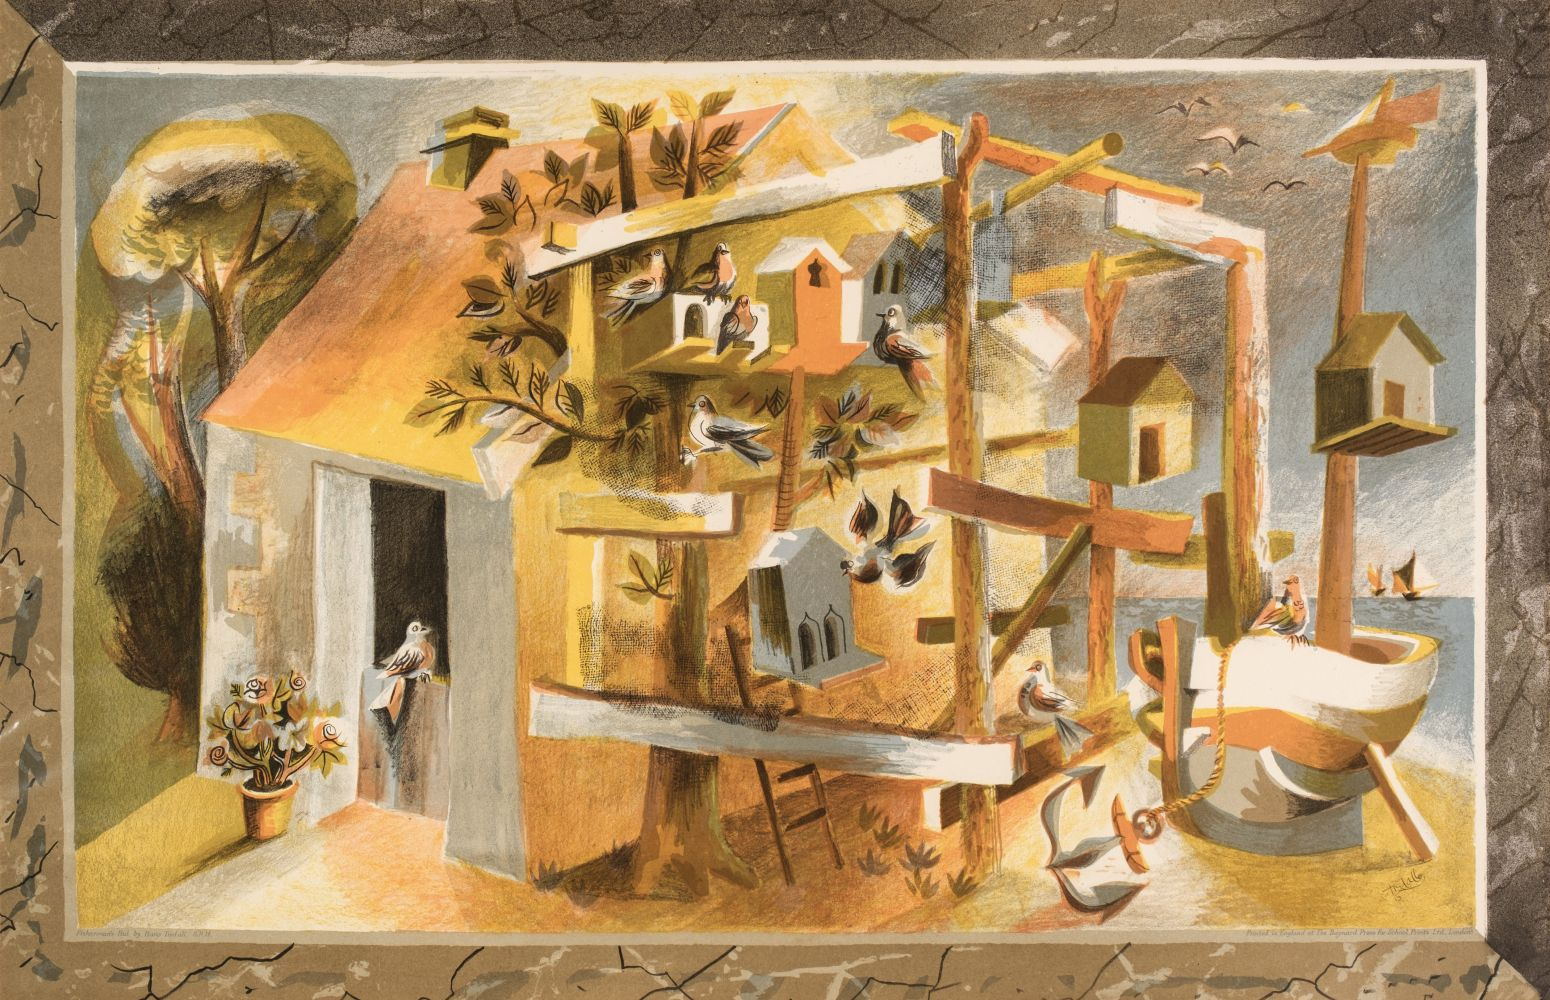 * Tisdall (Hans, 1910-1997). Fisherman's Hut, 1946, colour lithograph, and two other School Prints